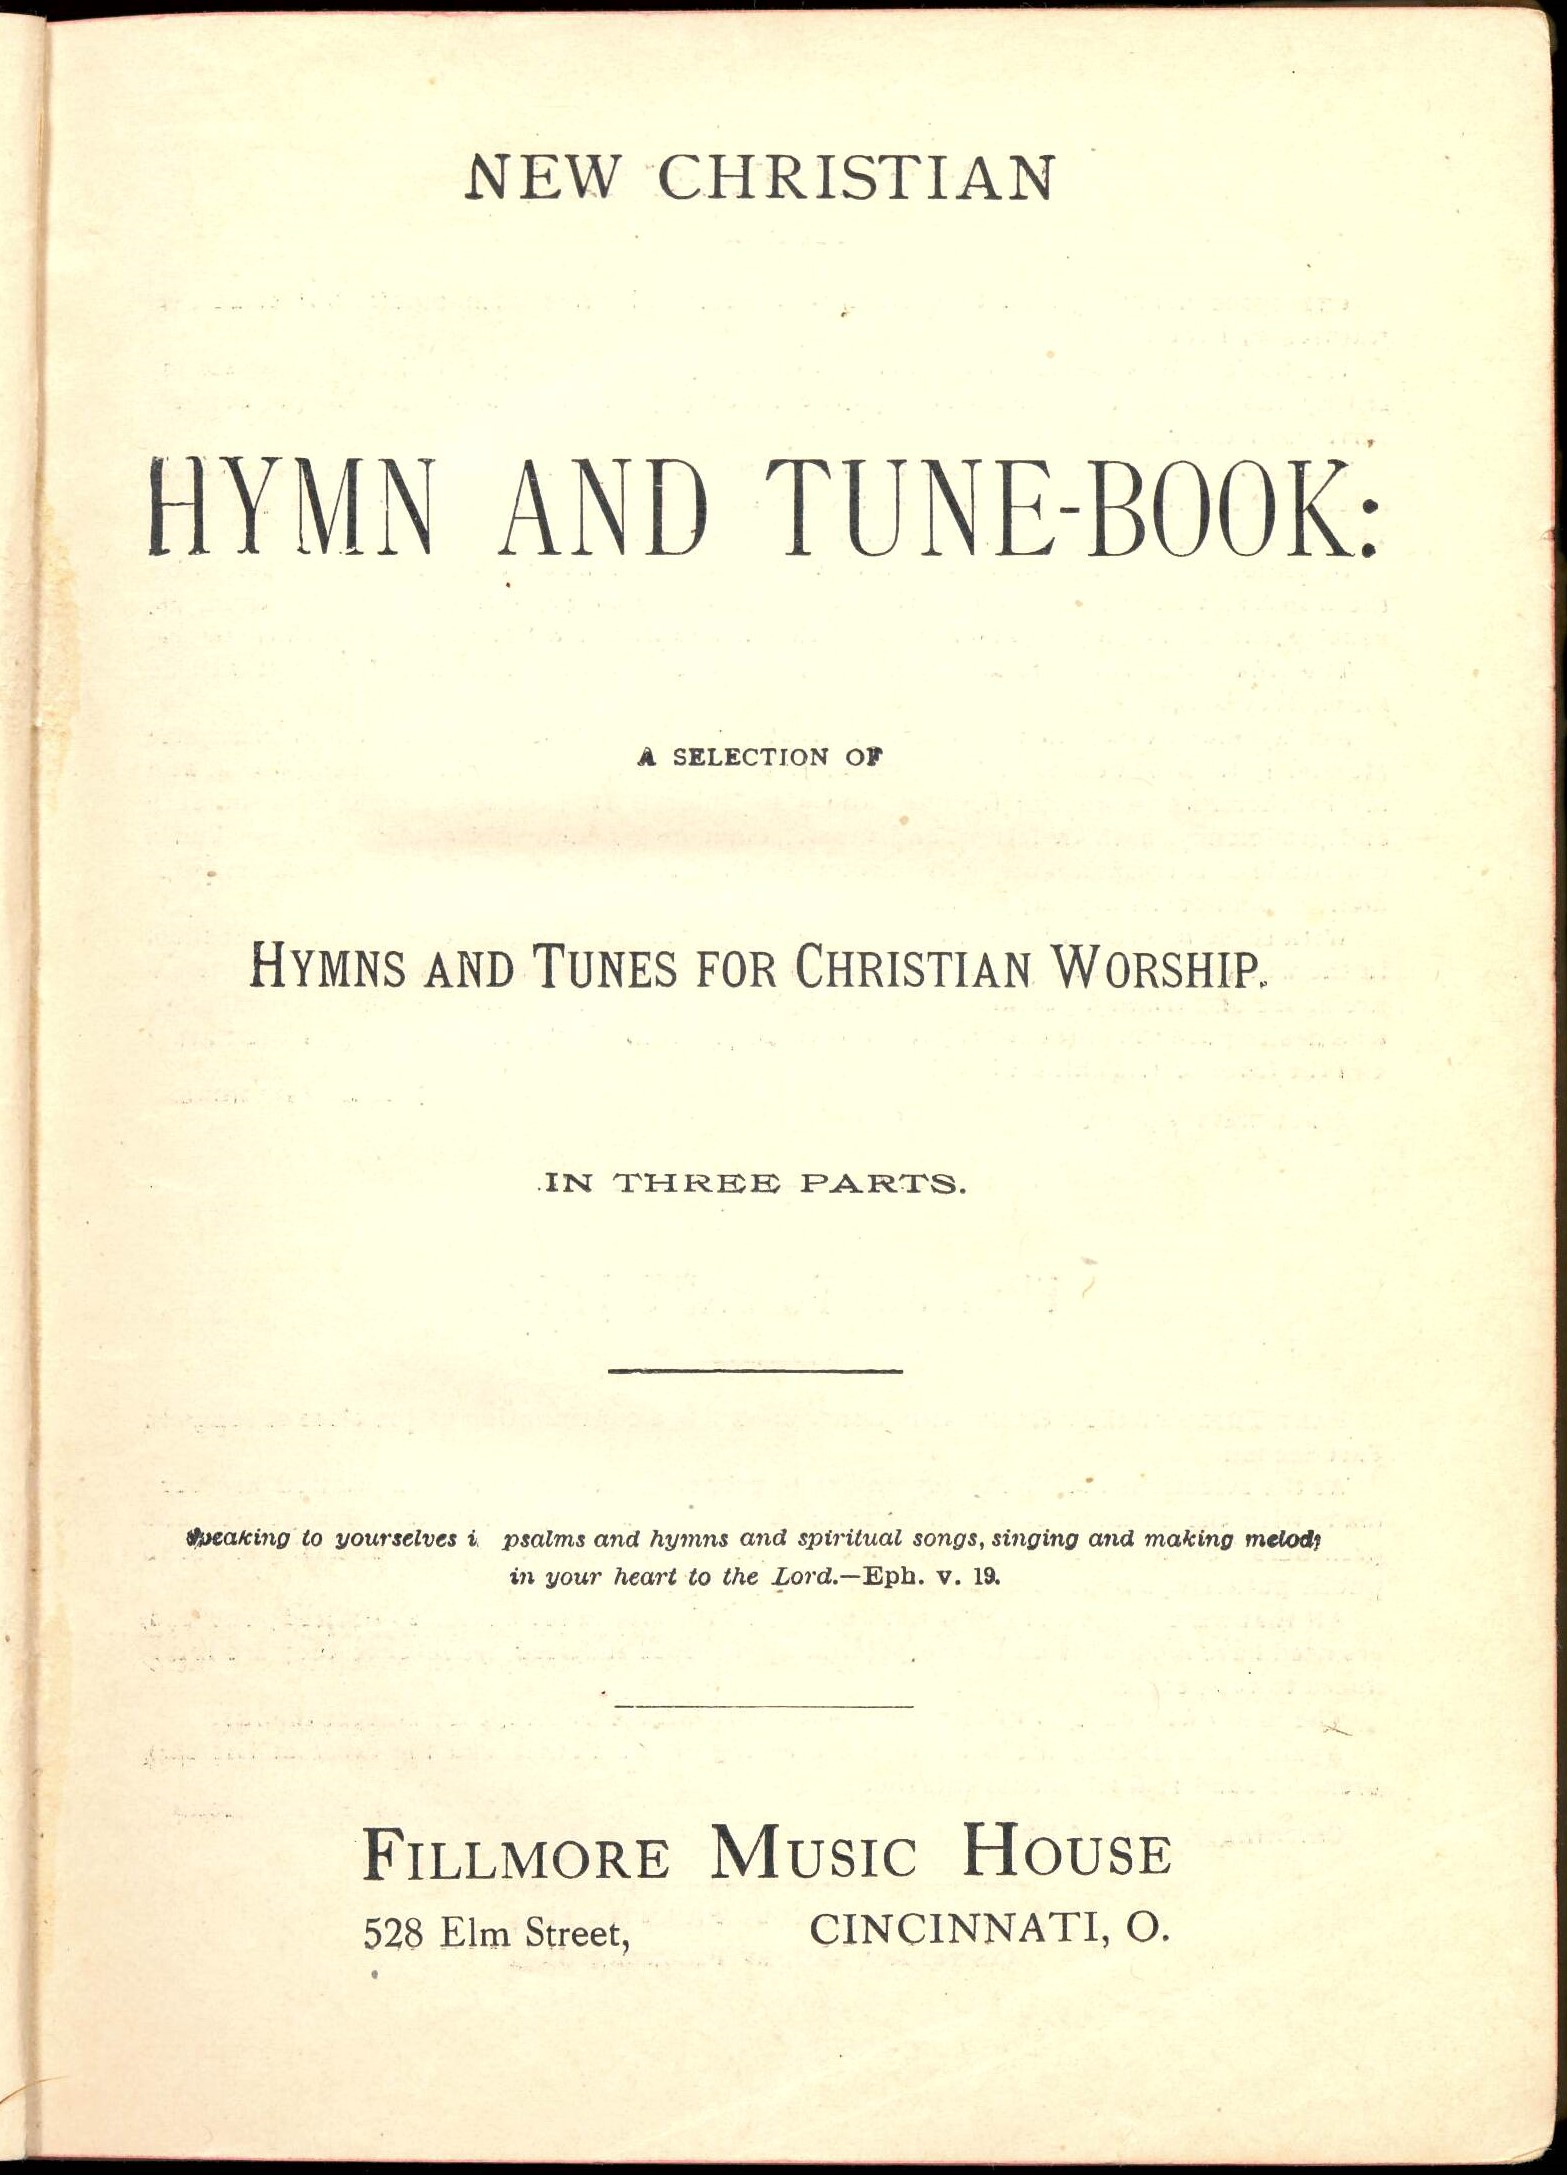 The New Christian Hymn and Tune Book: A Selection of Hymns and Tunes for Christian Worship. Fillmore Music House: Cincinnati, 1887. Title page.